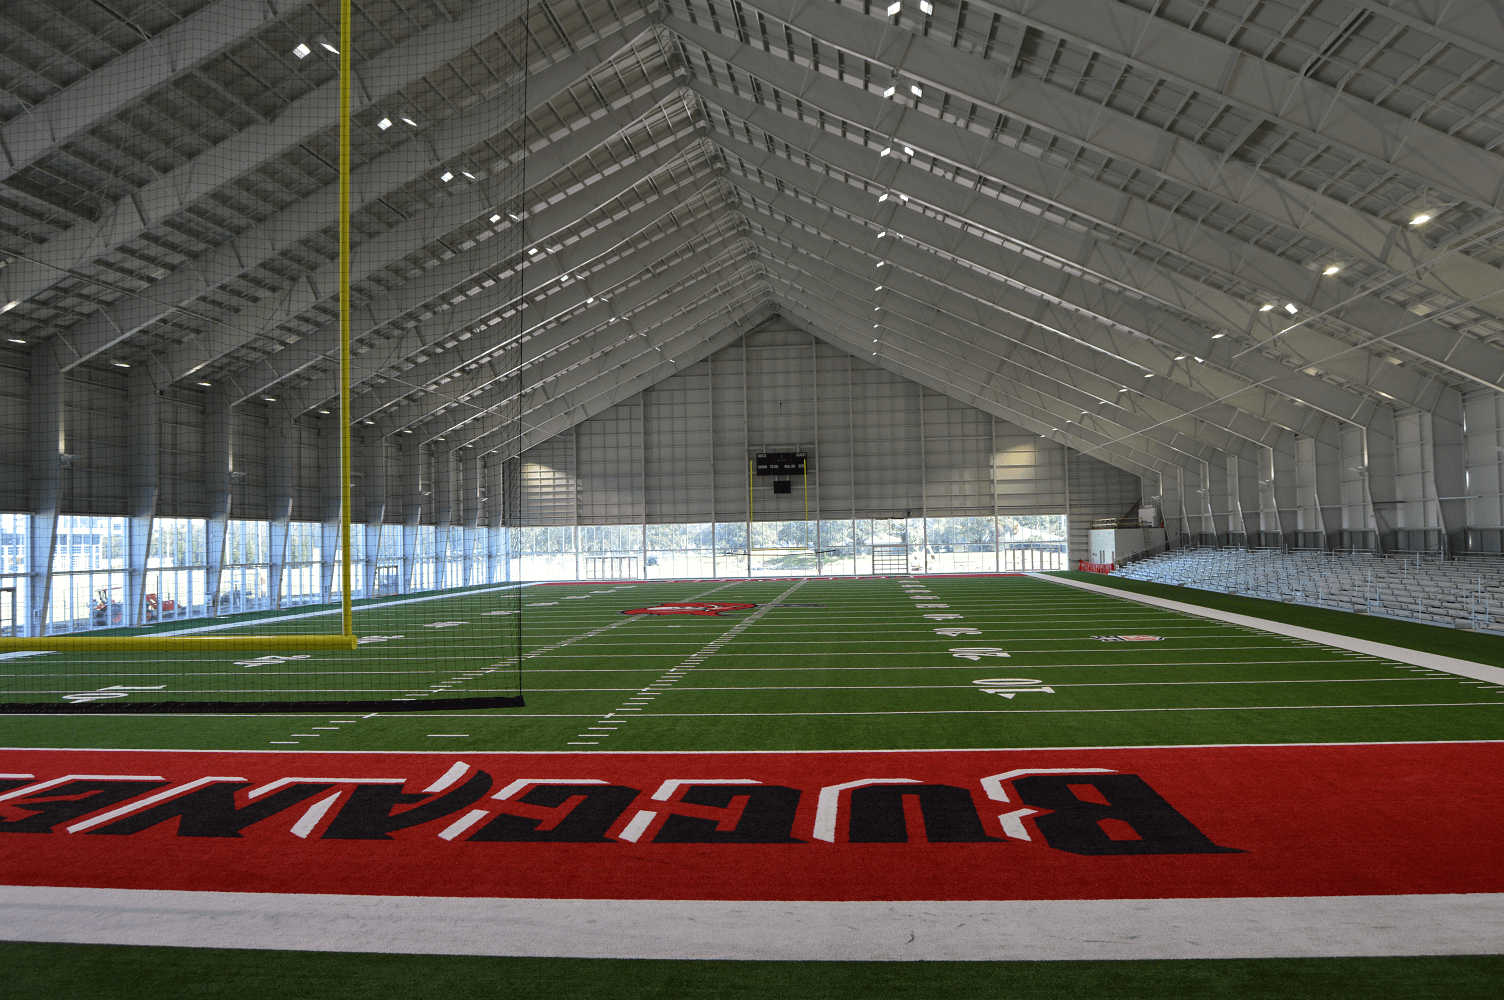 Tampa Bay Buccaneers Indoor Practice Facility